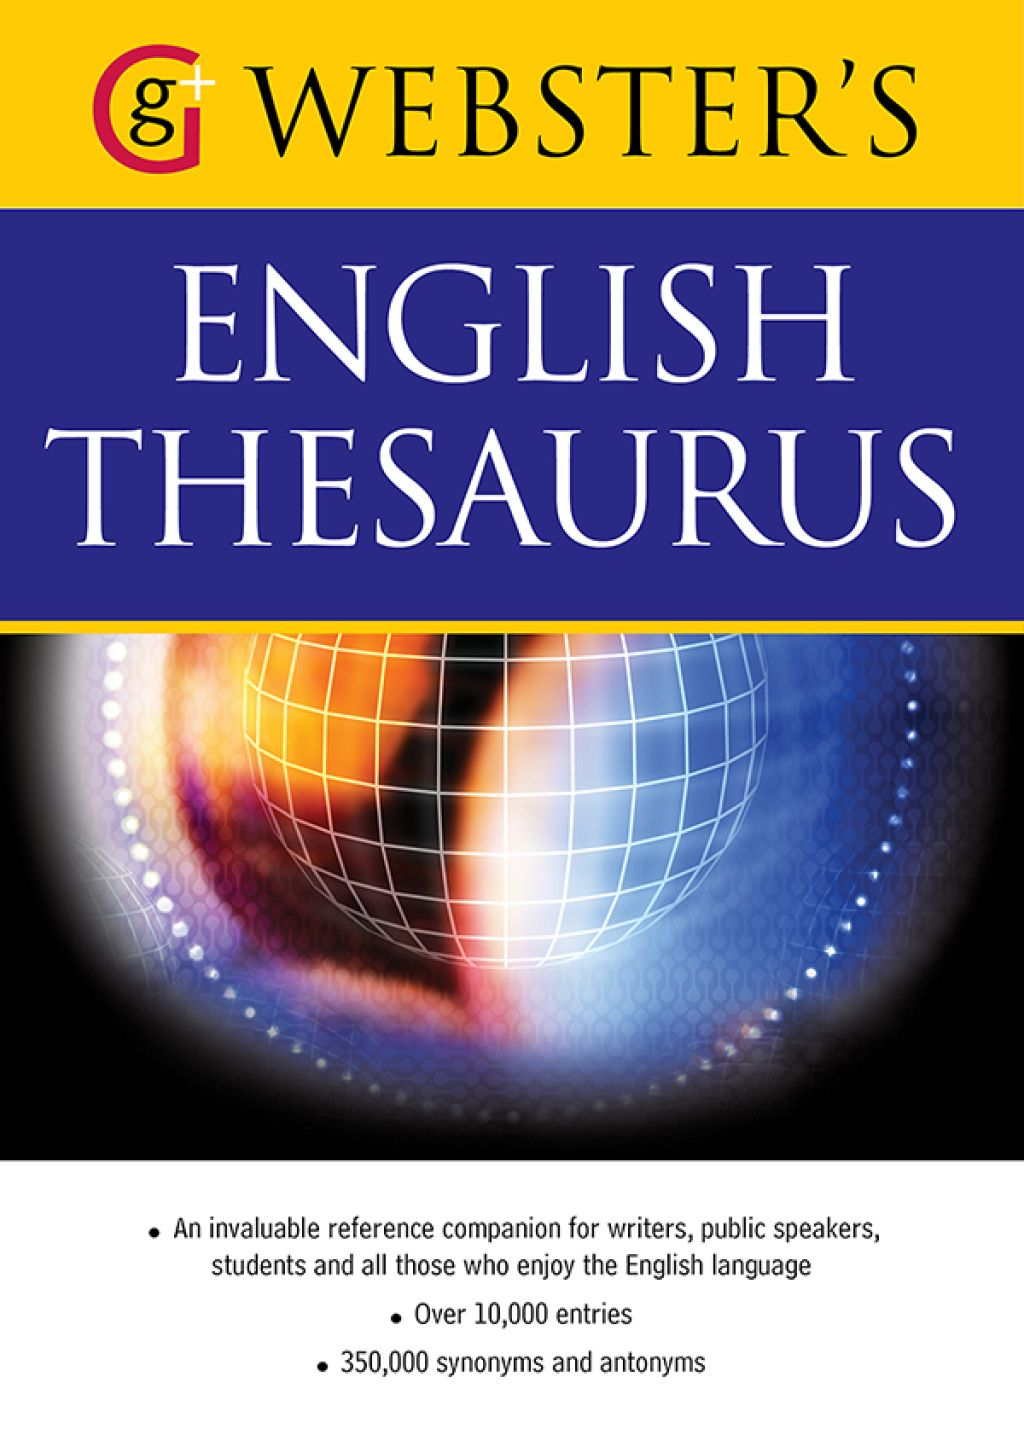 Webster's American English Thesaurus (eBook) in 2019